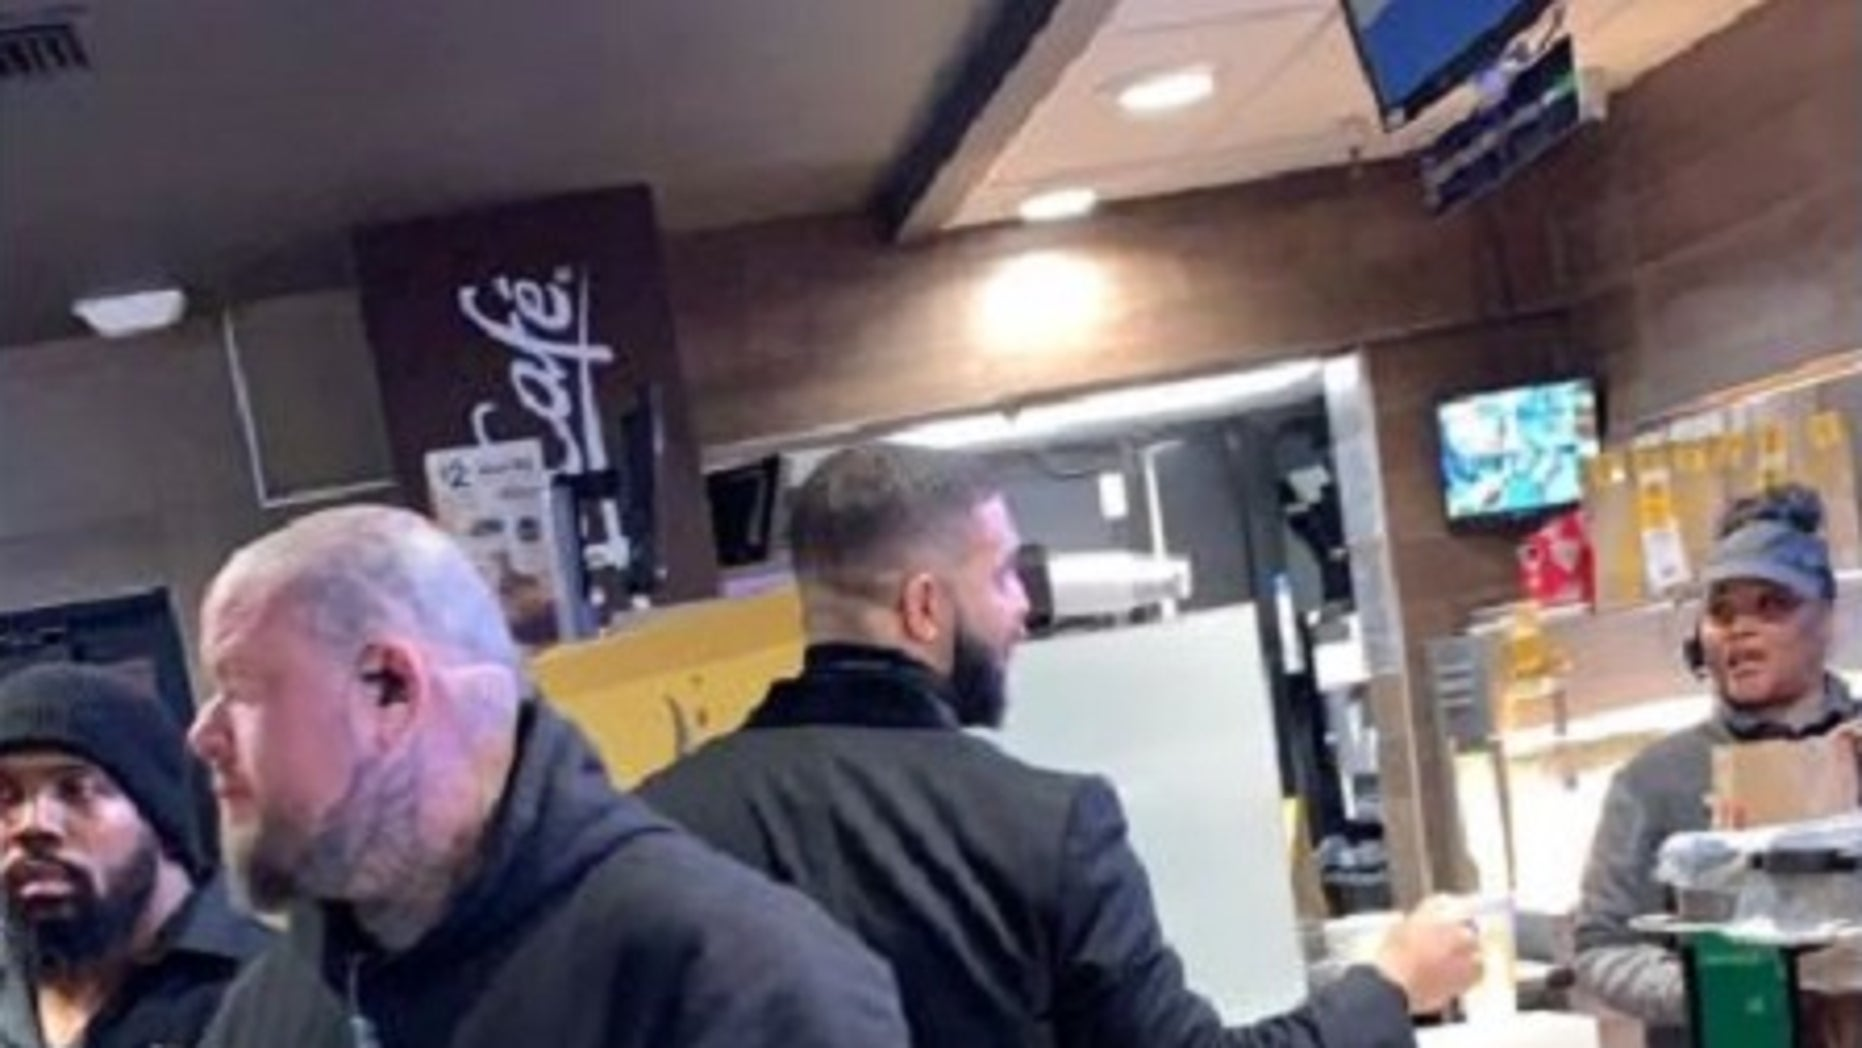 Drake Gives Two LA McDonald's Workers $100 Tip